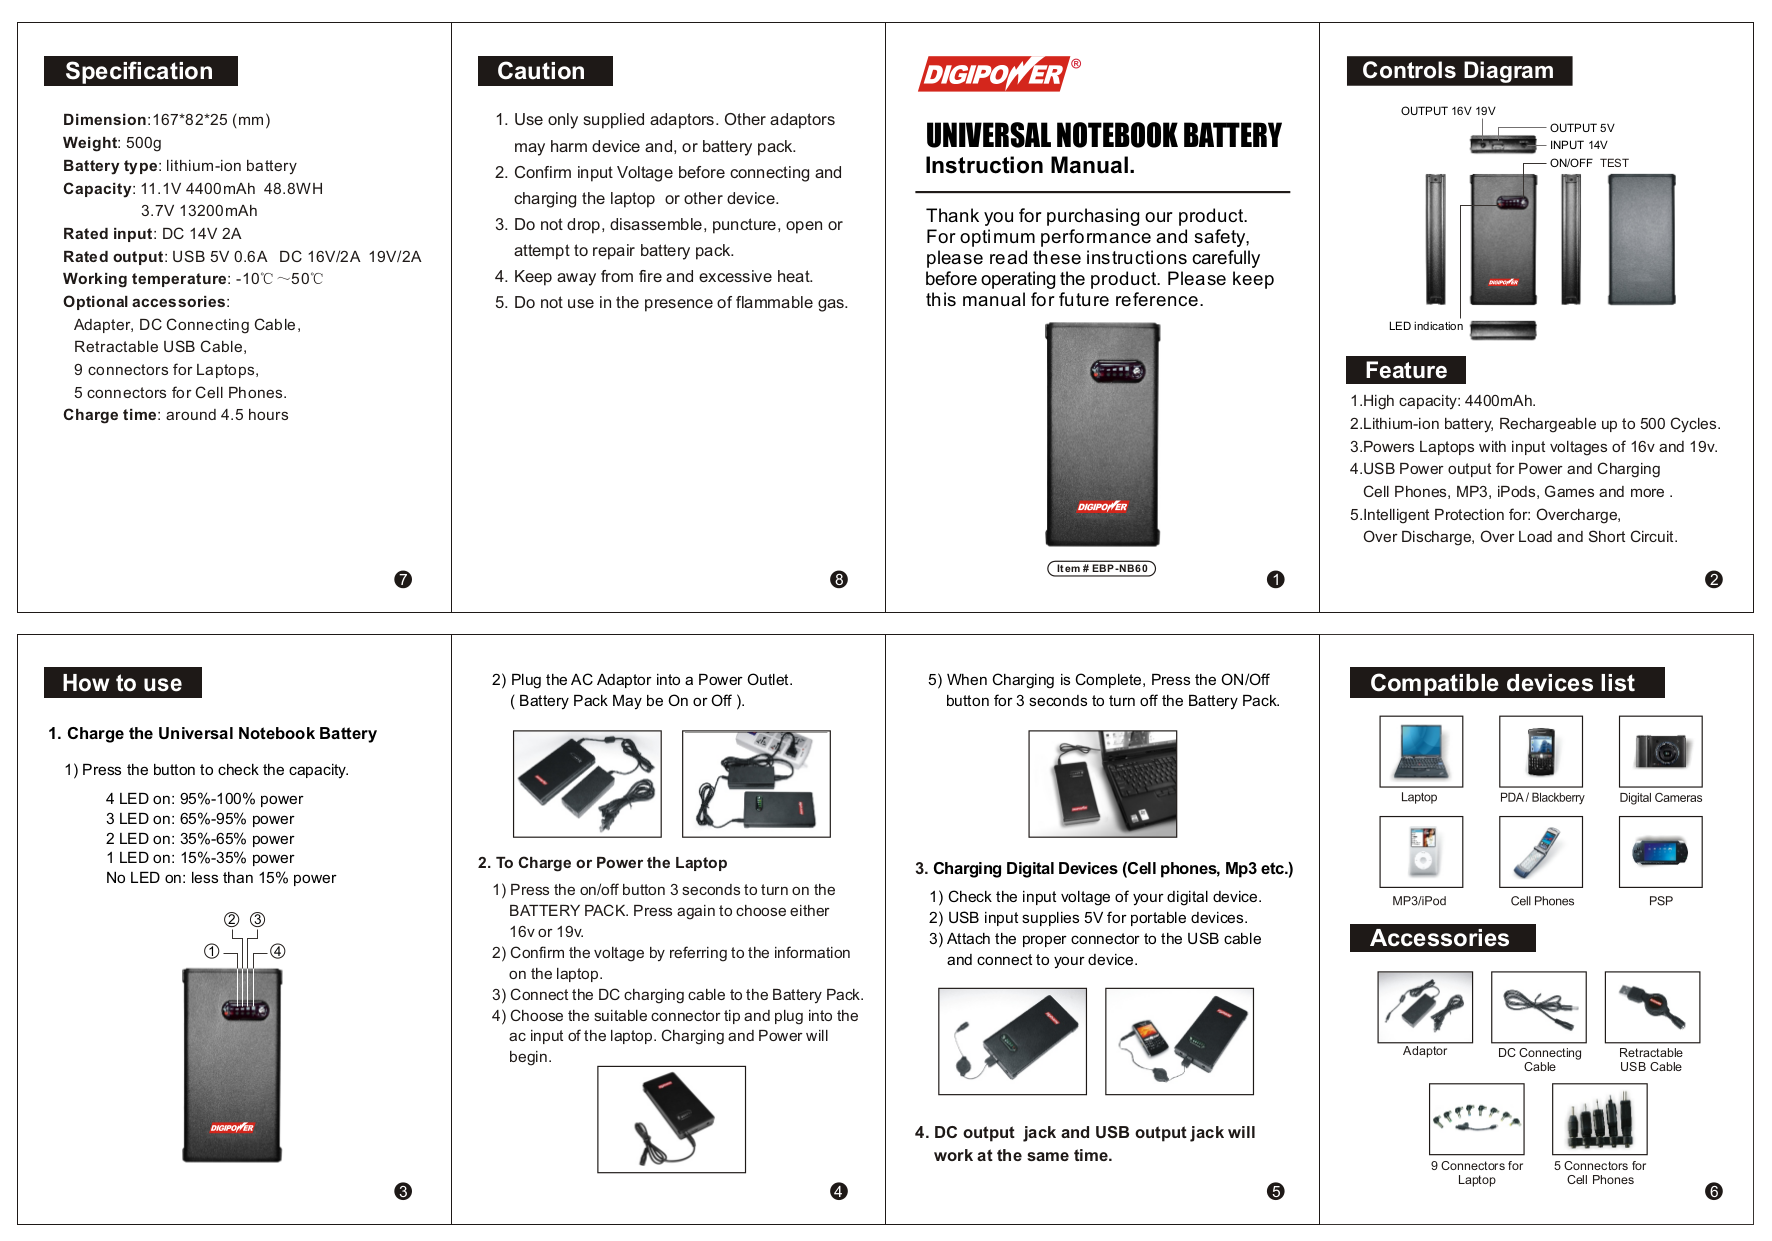 pdf for IBM Laptop ThinkPad i Series 1300 manual